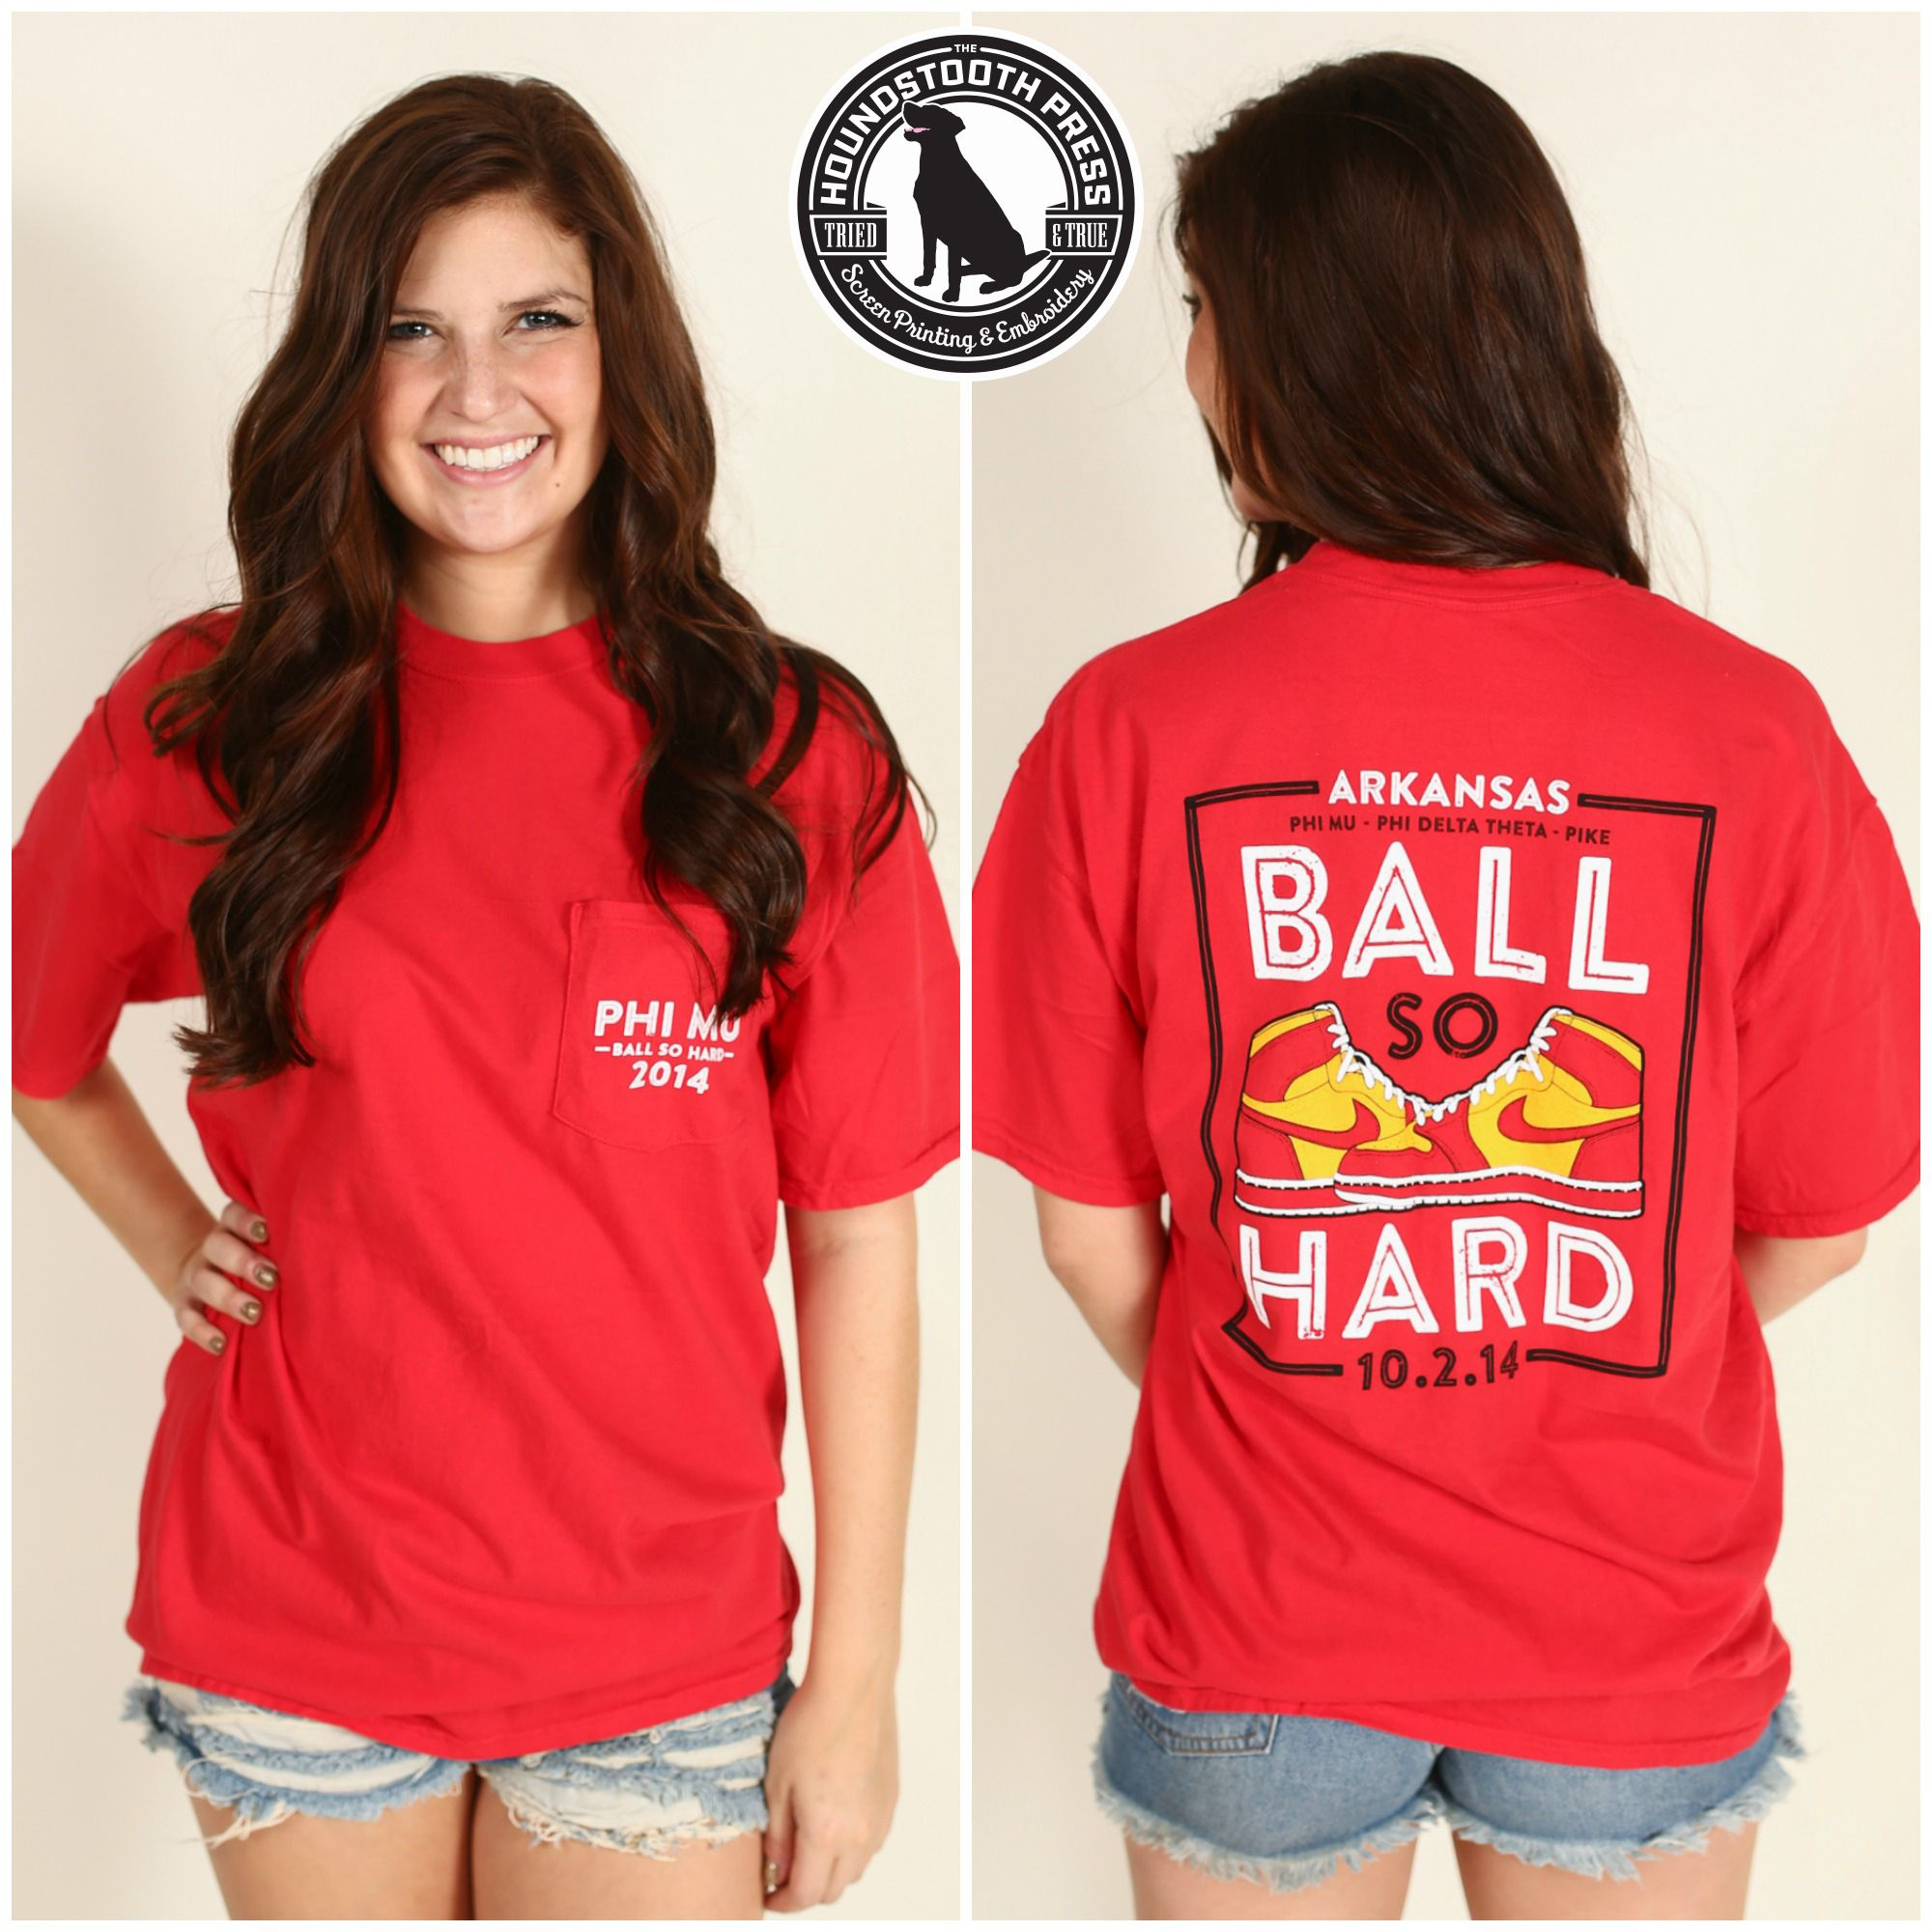 University of Arkansas Phi Mu Ball So Hard T-Shirt. Comfort Colors, Paprika. Love The Lab - Custom Designs - Phi Mu.